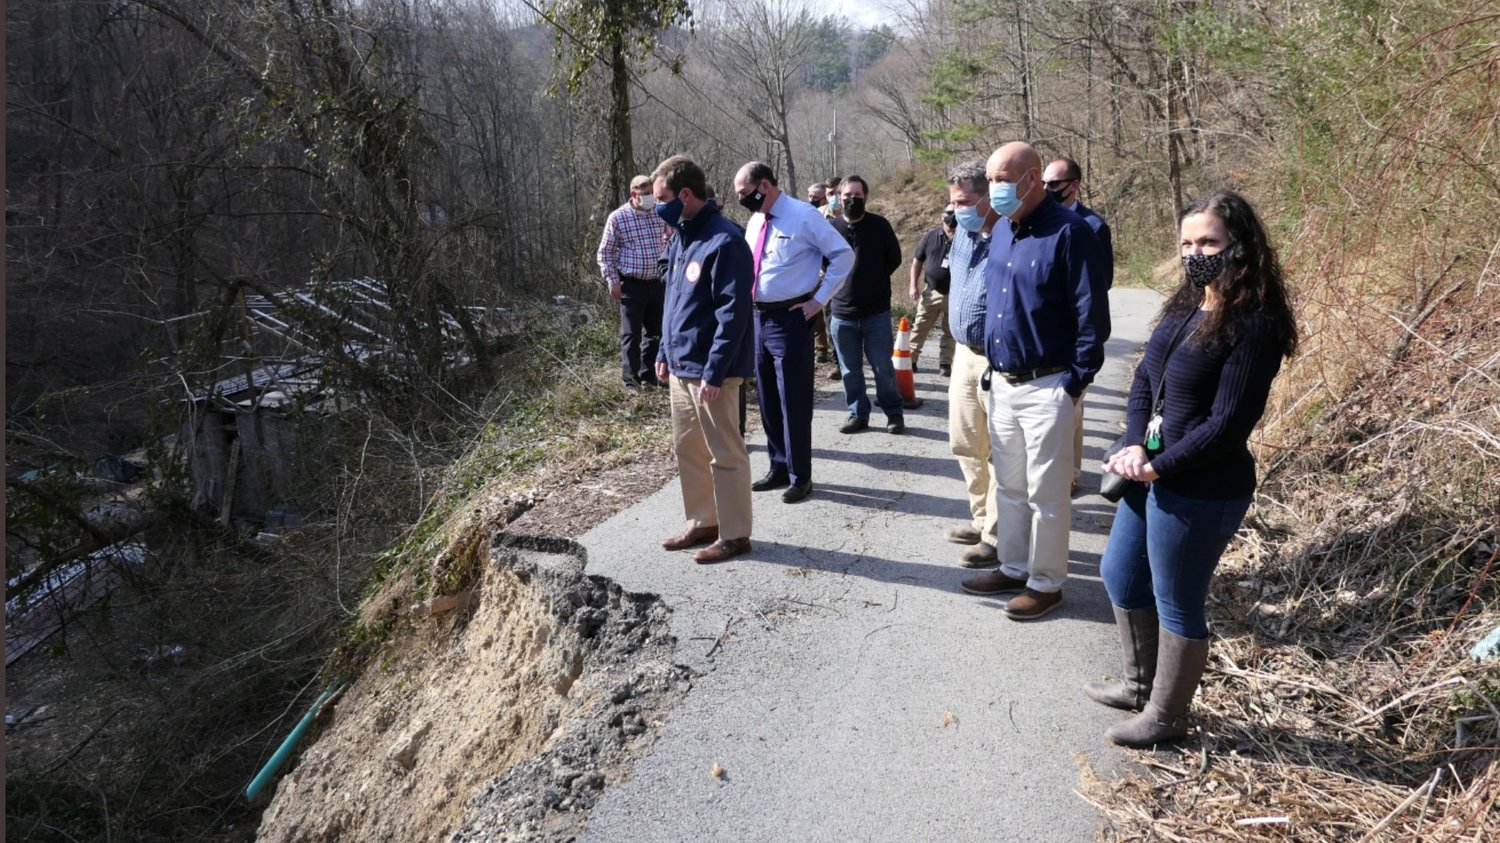 Gov. Andy Beshear and Senior Advisor Rocky Adkins tour flood damage in Perry County last month after severe flooding. Beshear is asking President Biden for a major disaster declaration. (Governor's Office photo)